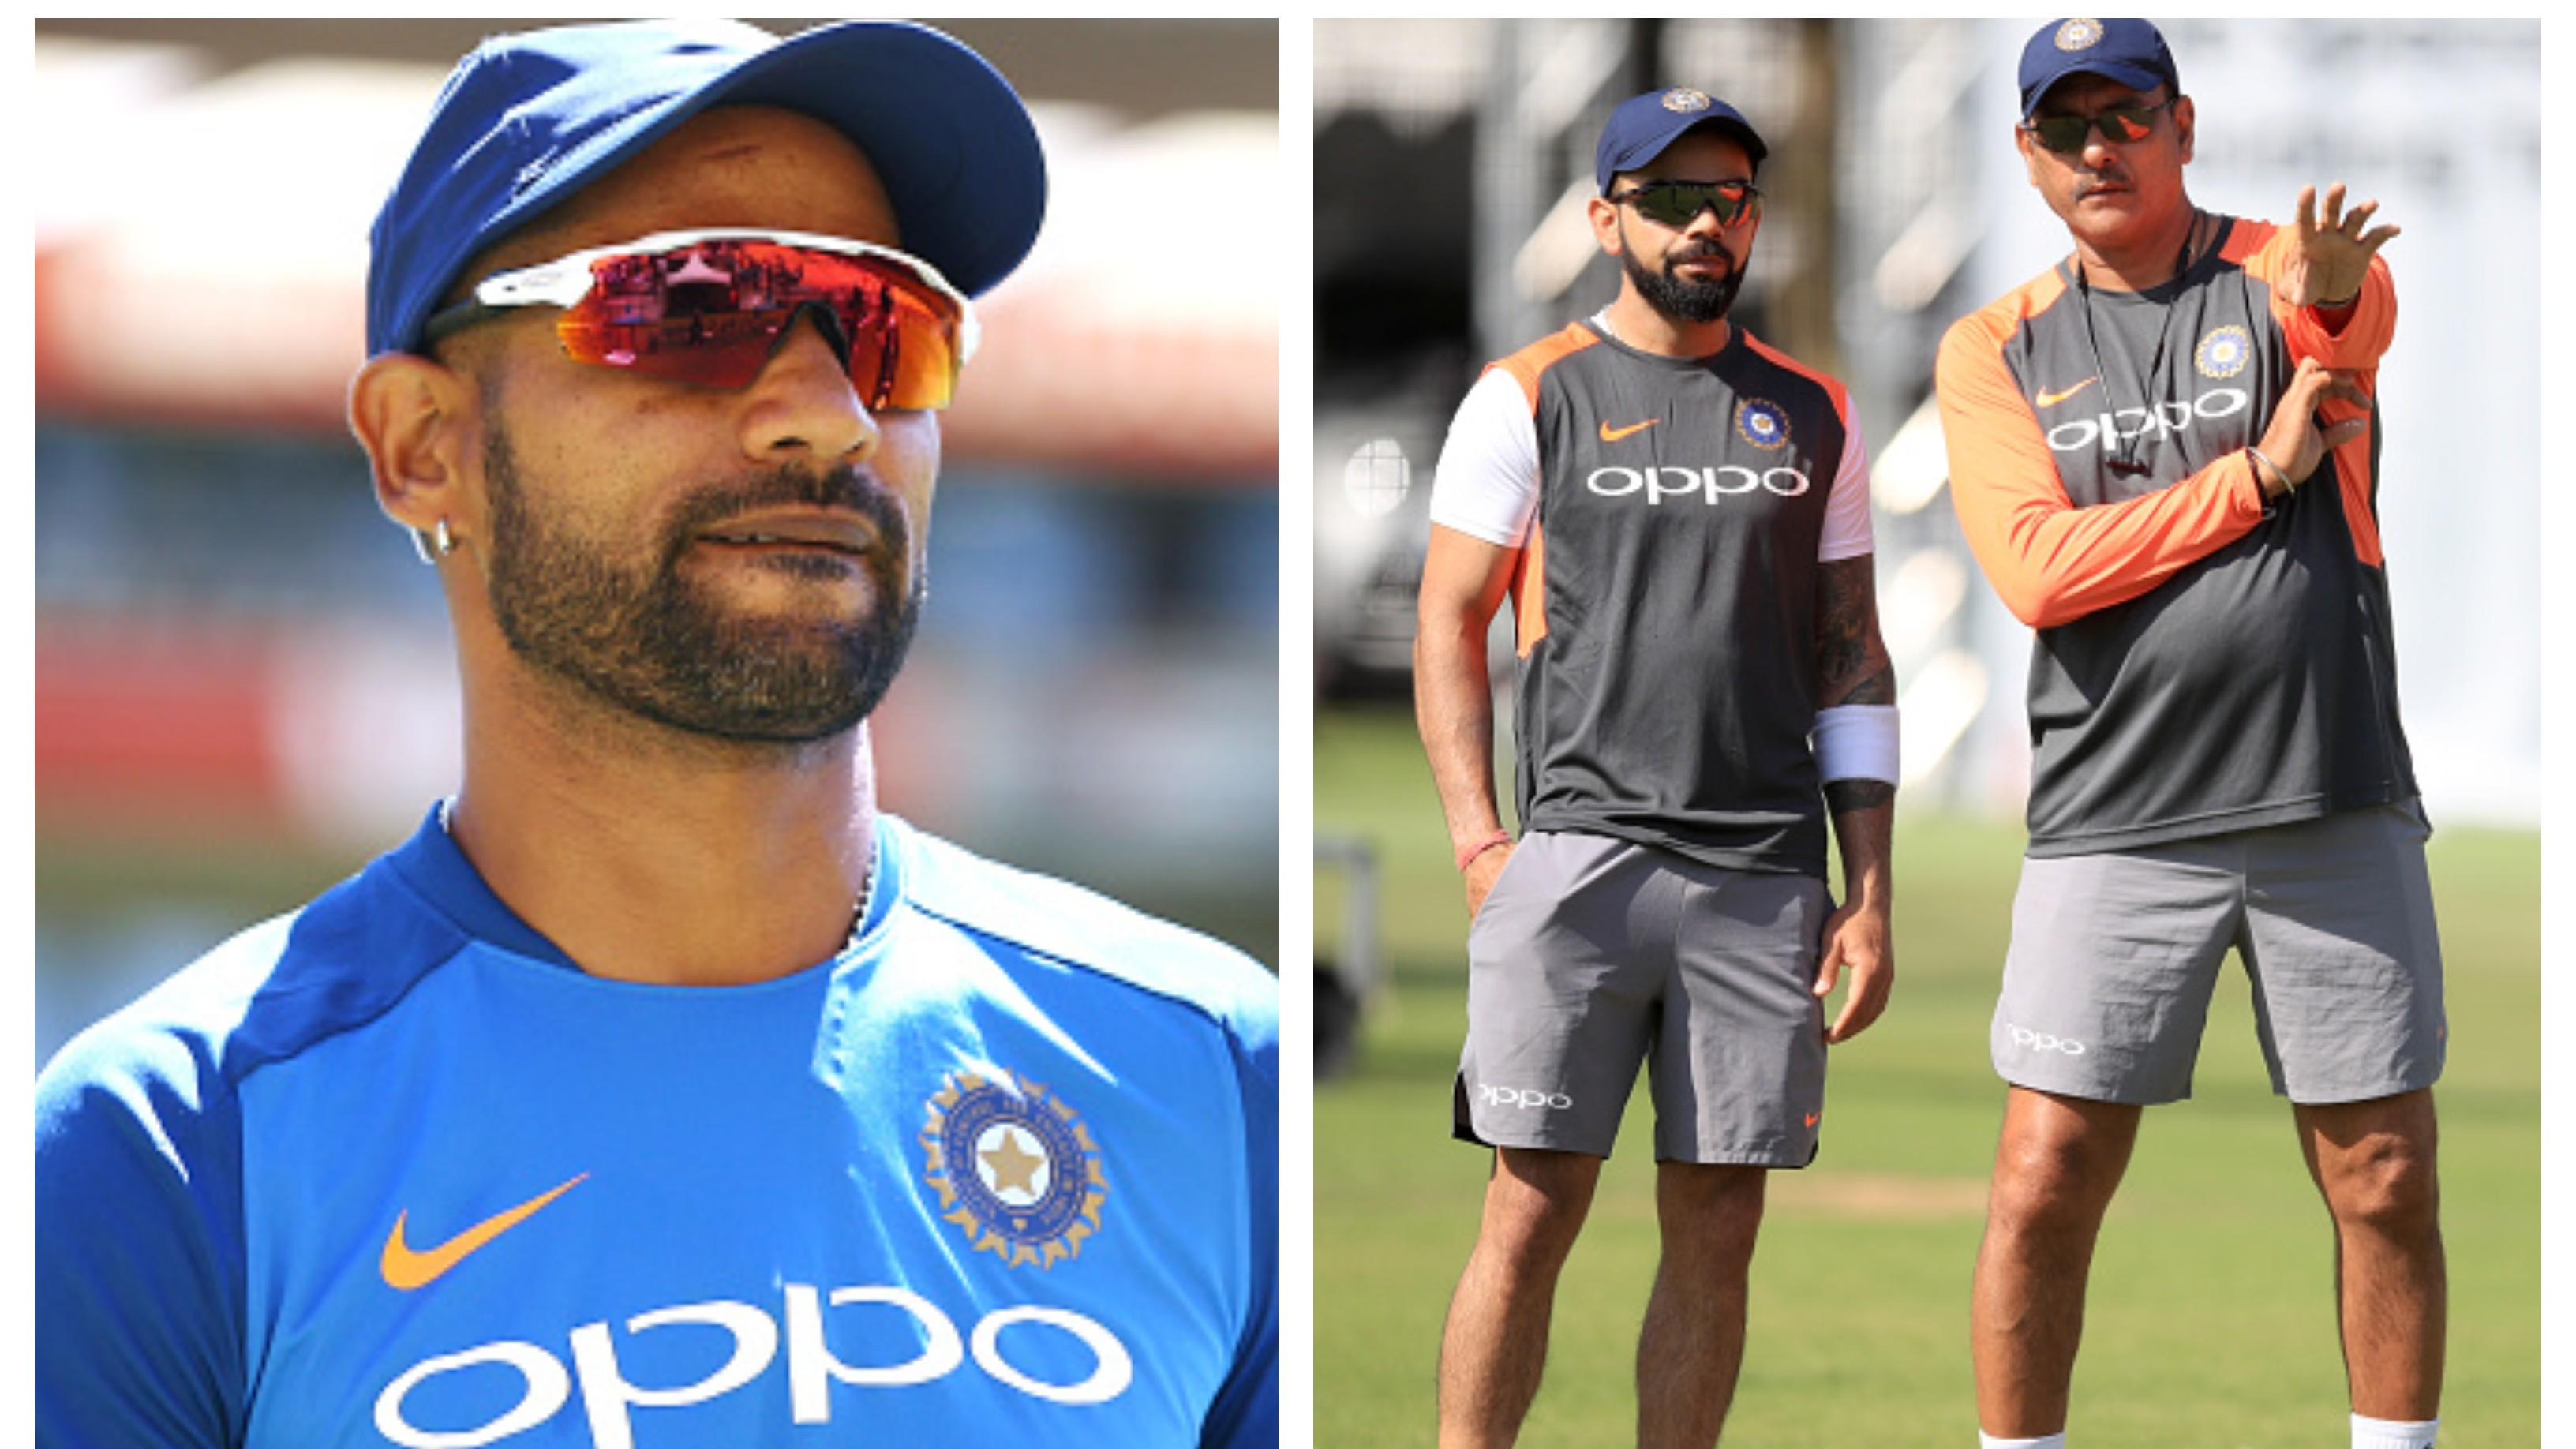 CWC 2019: Captain and coach will decide Team India's No. 4 batsman for World Cup, says Dhawan